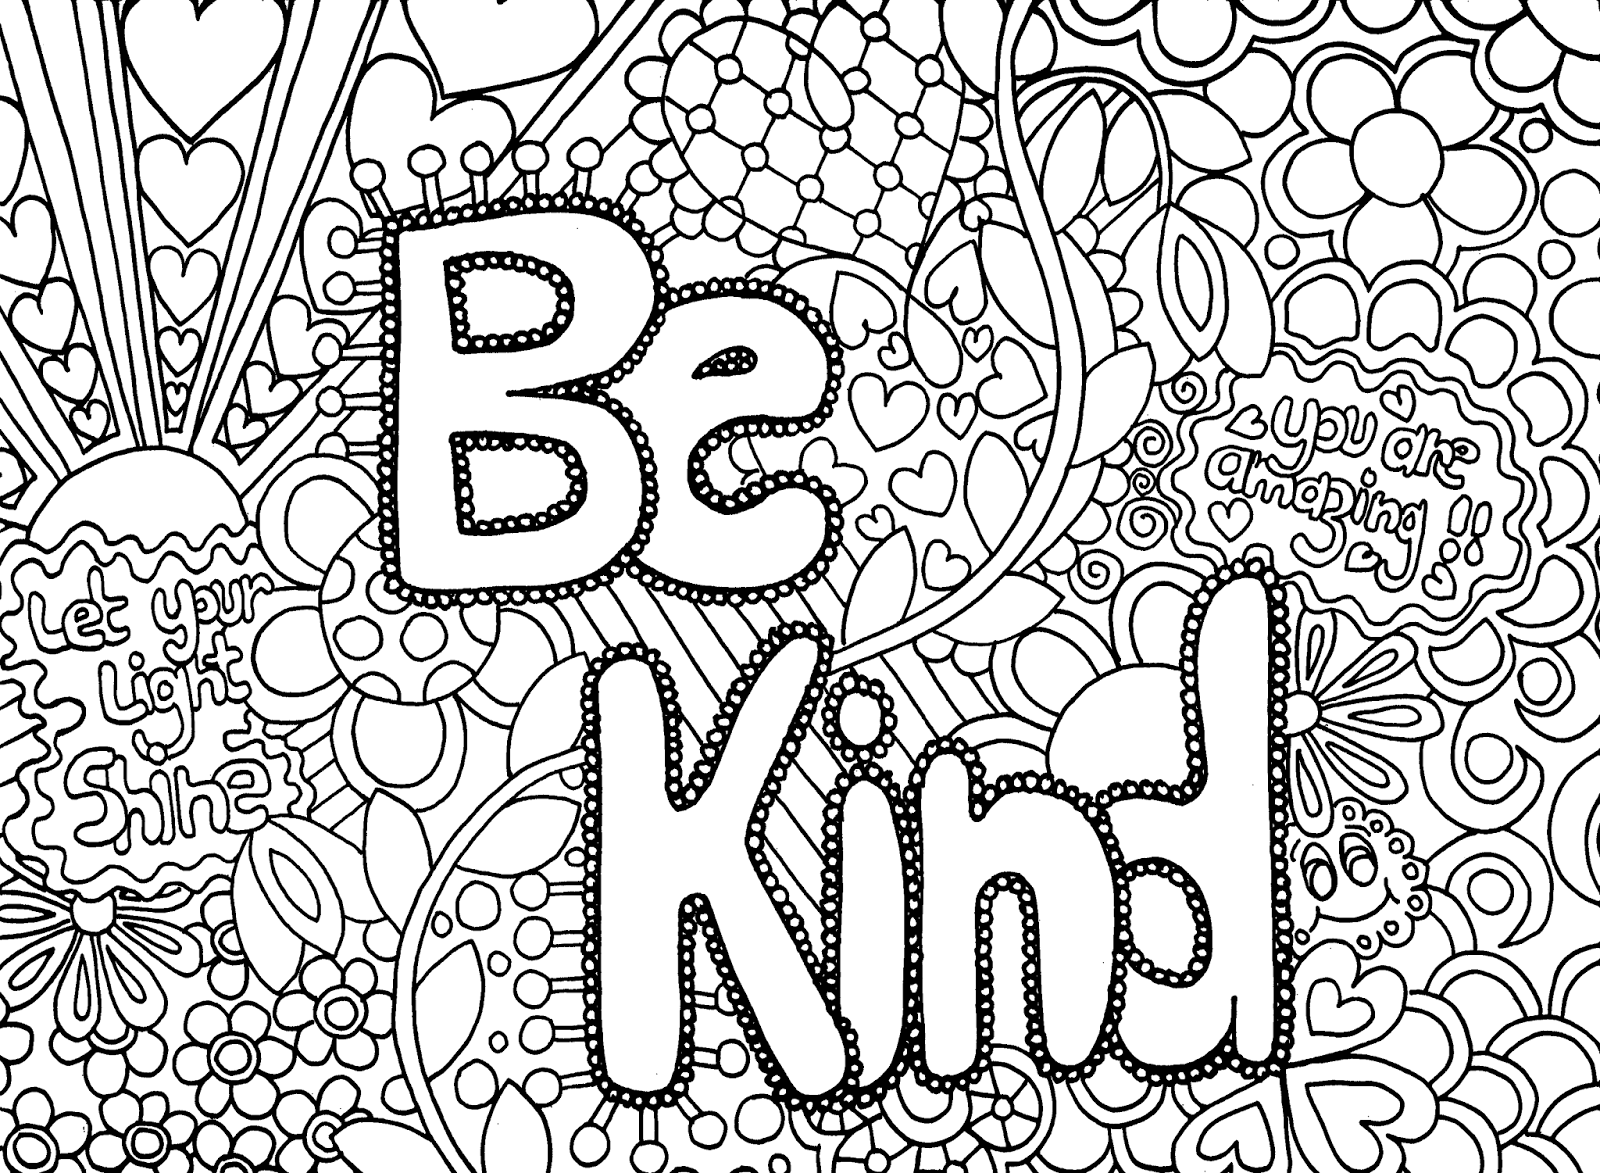 hard coloring pages for adults - Difficult Coloring Pages